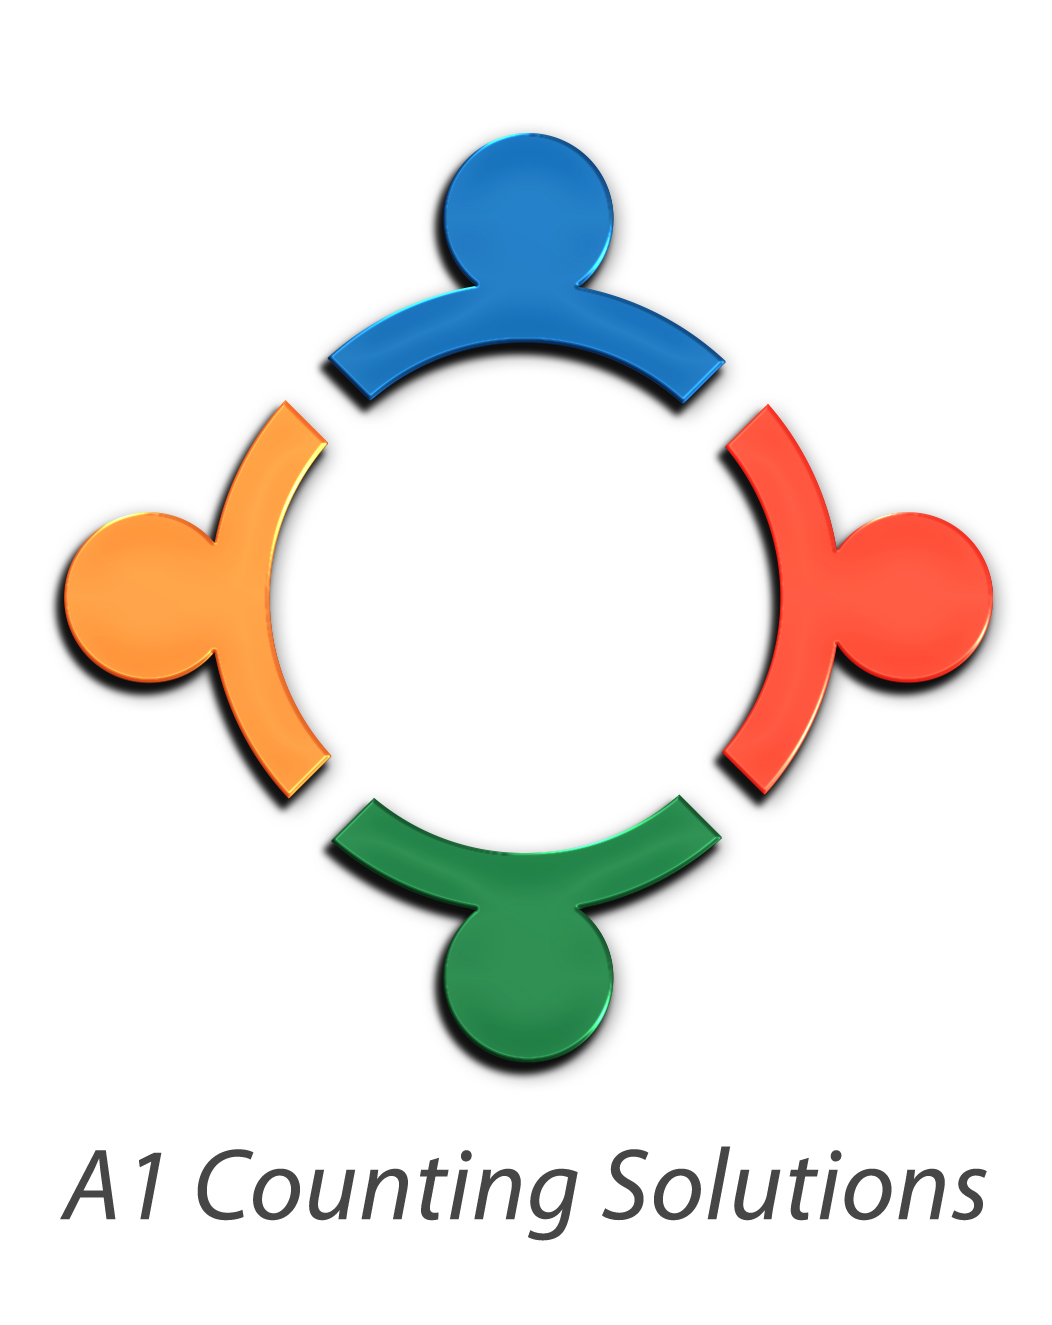 Shopup Customer Behavior Analytics partners with A1 Counting Solutions